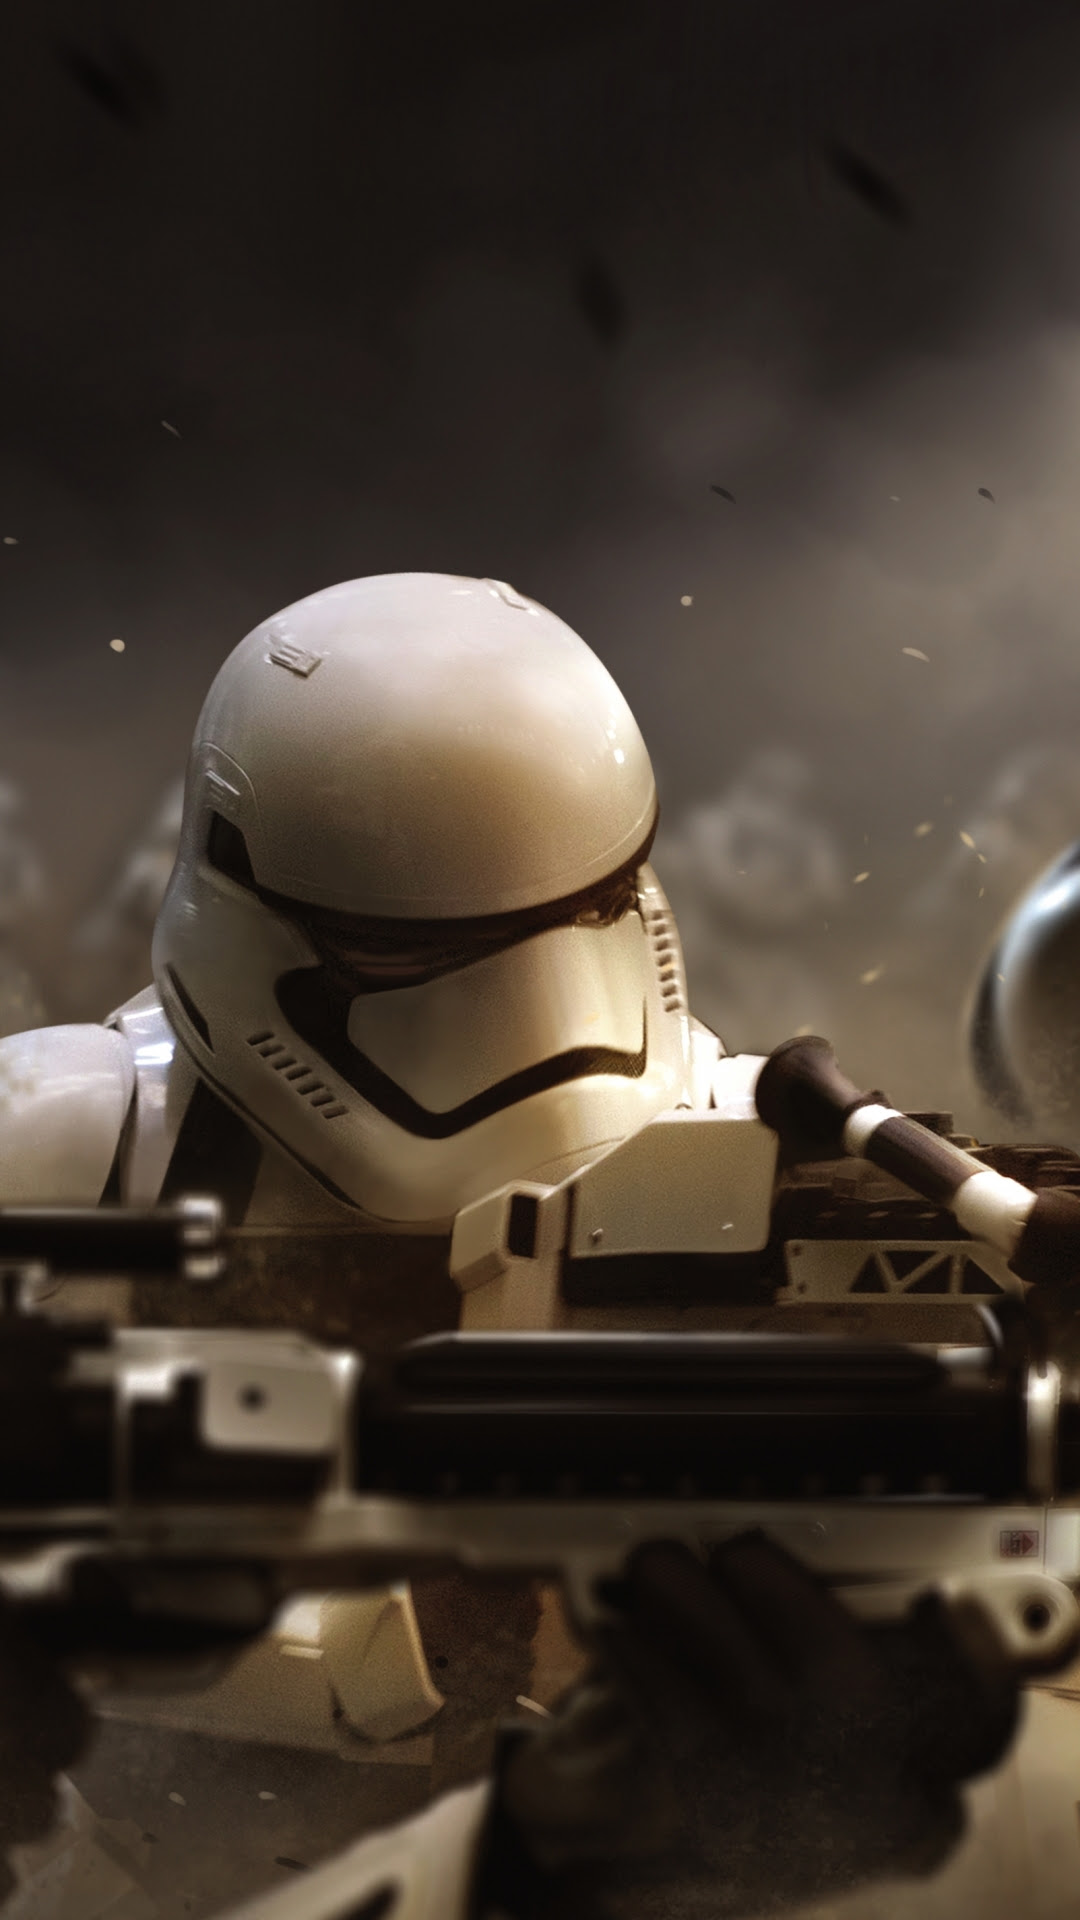 Star Wars: The Force Awakens iPhone wallpapers